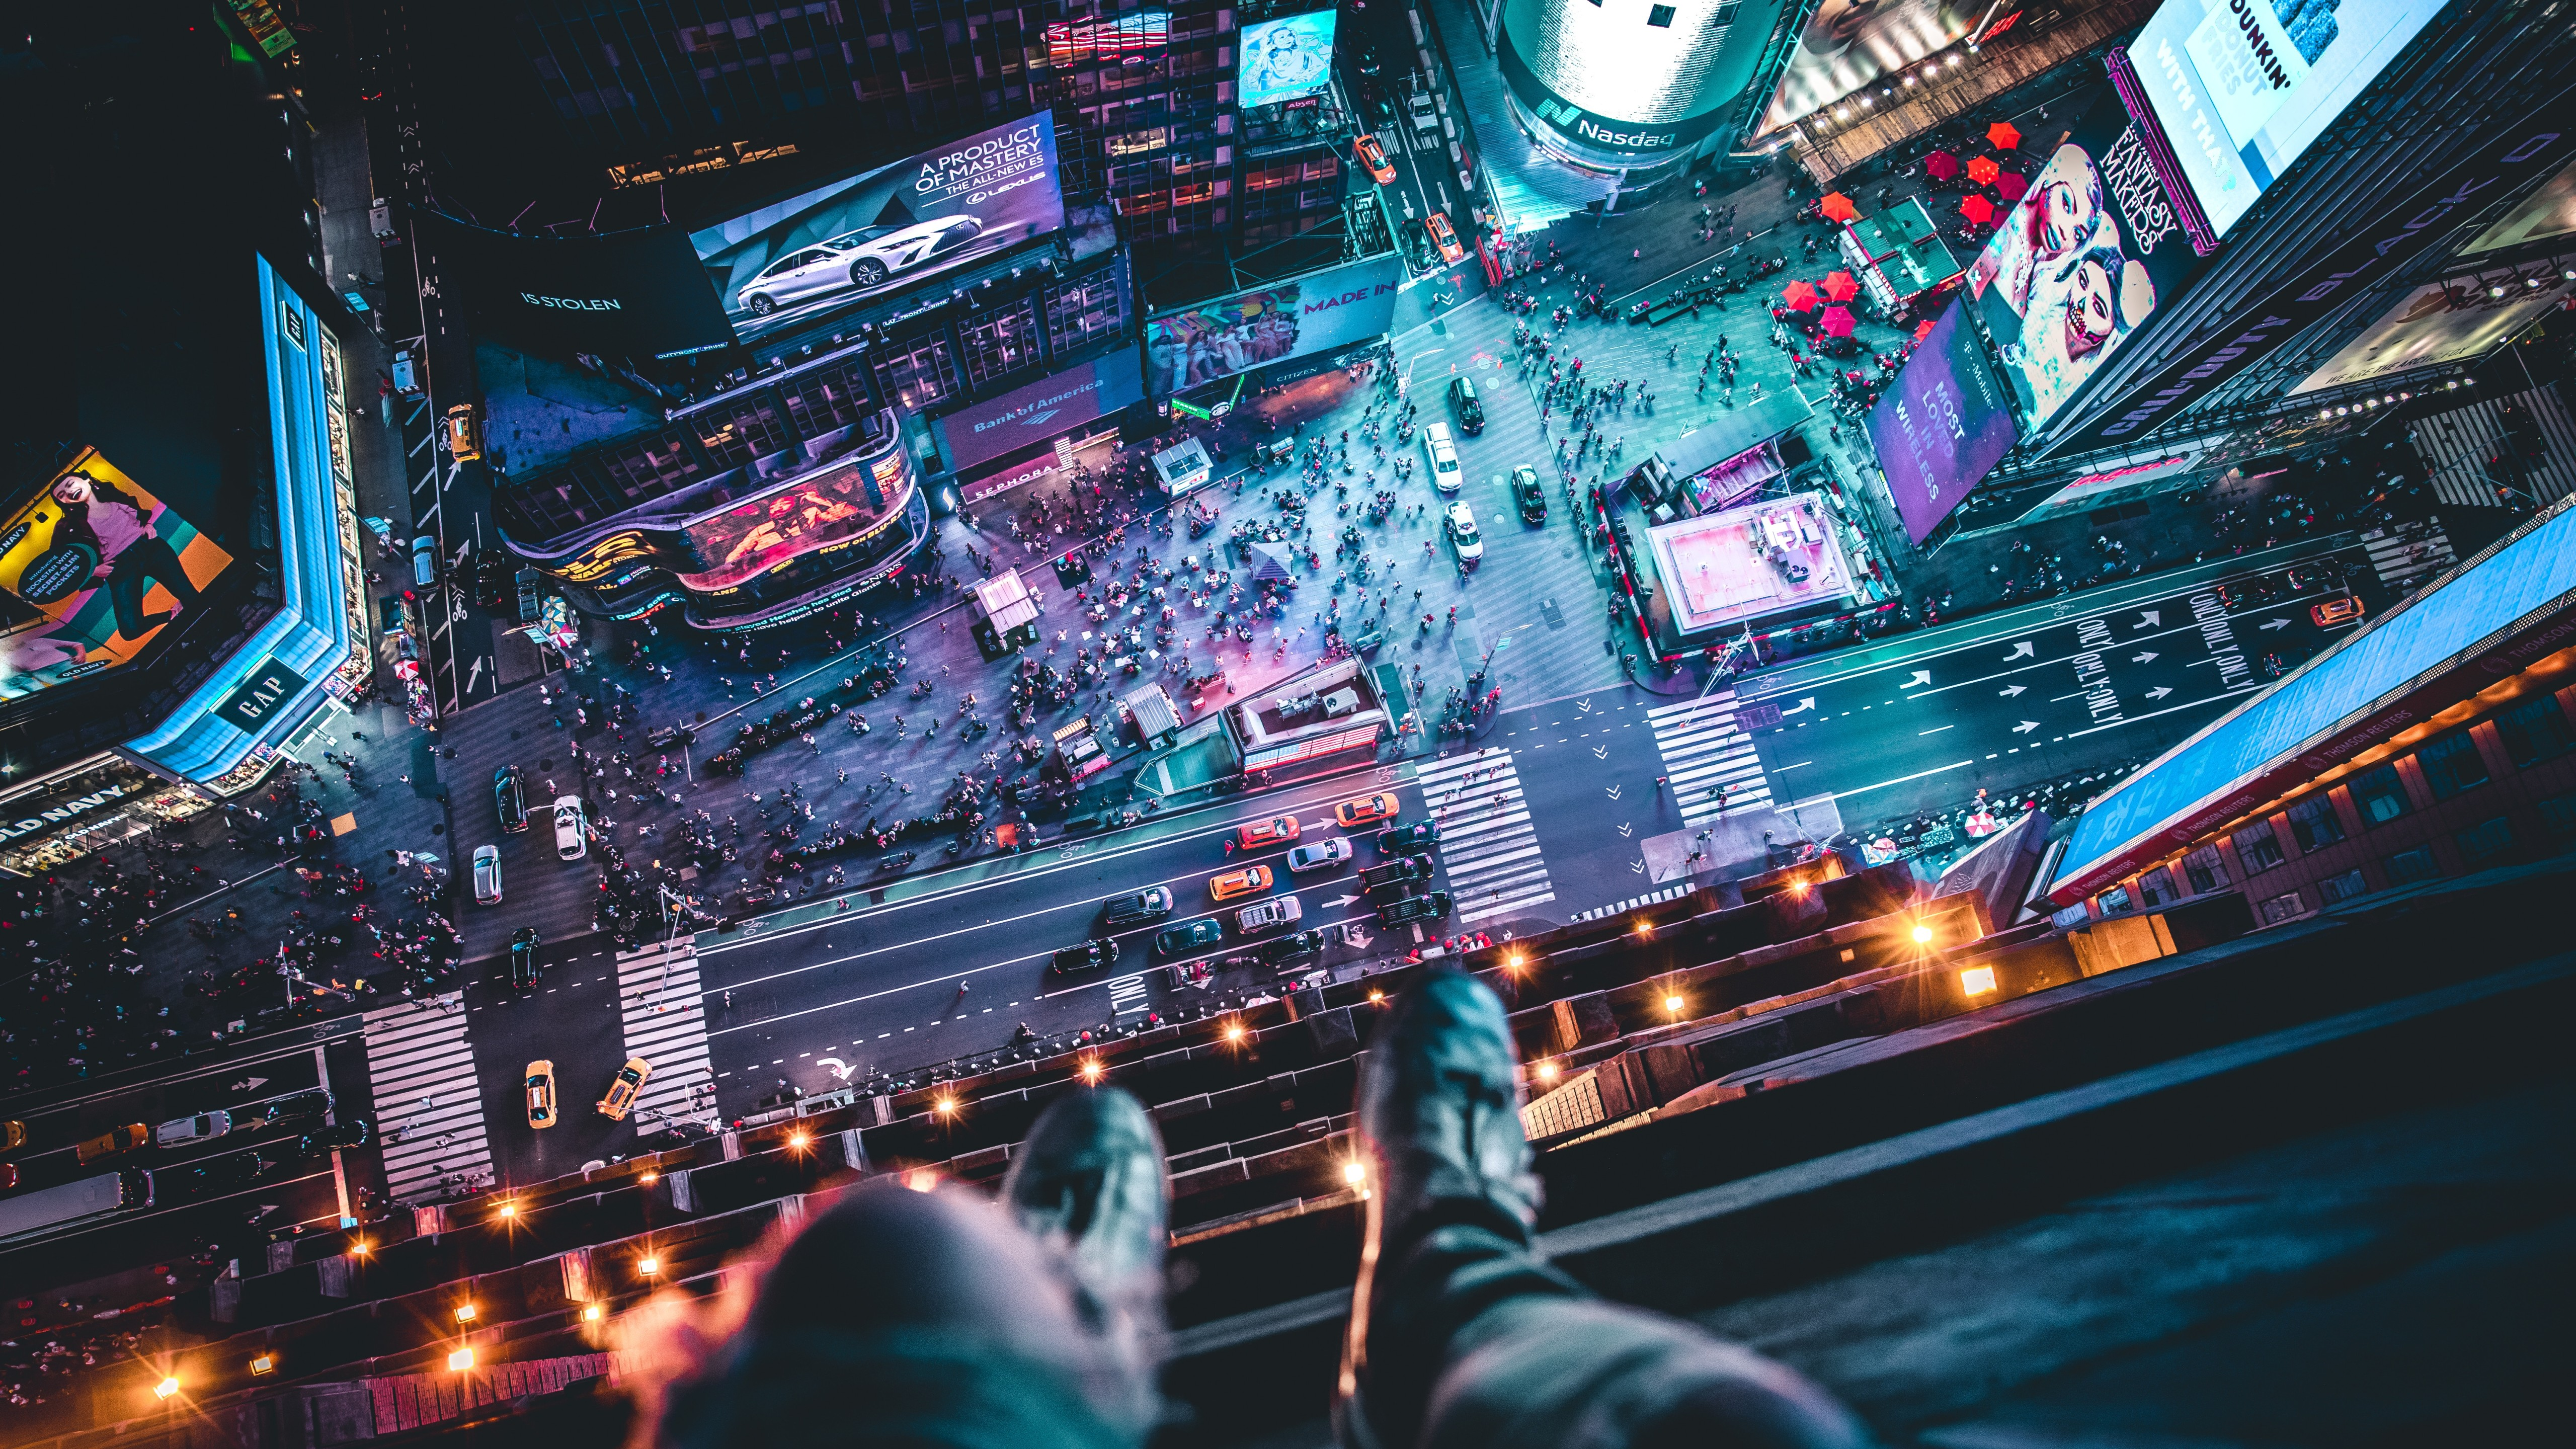 Aerial View Of Times Square With Man Sitting Wallpaper 5k Ultra Hd